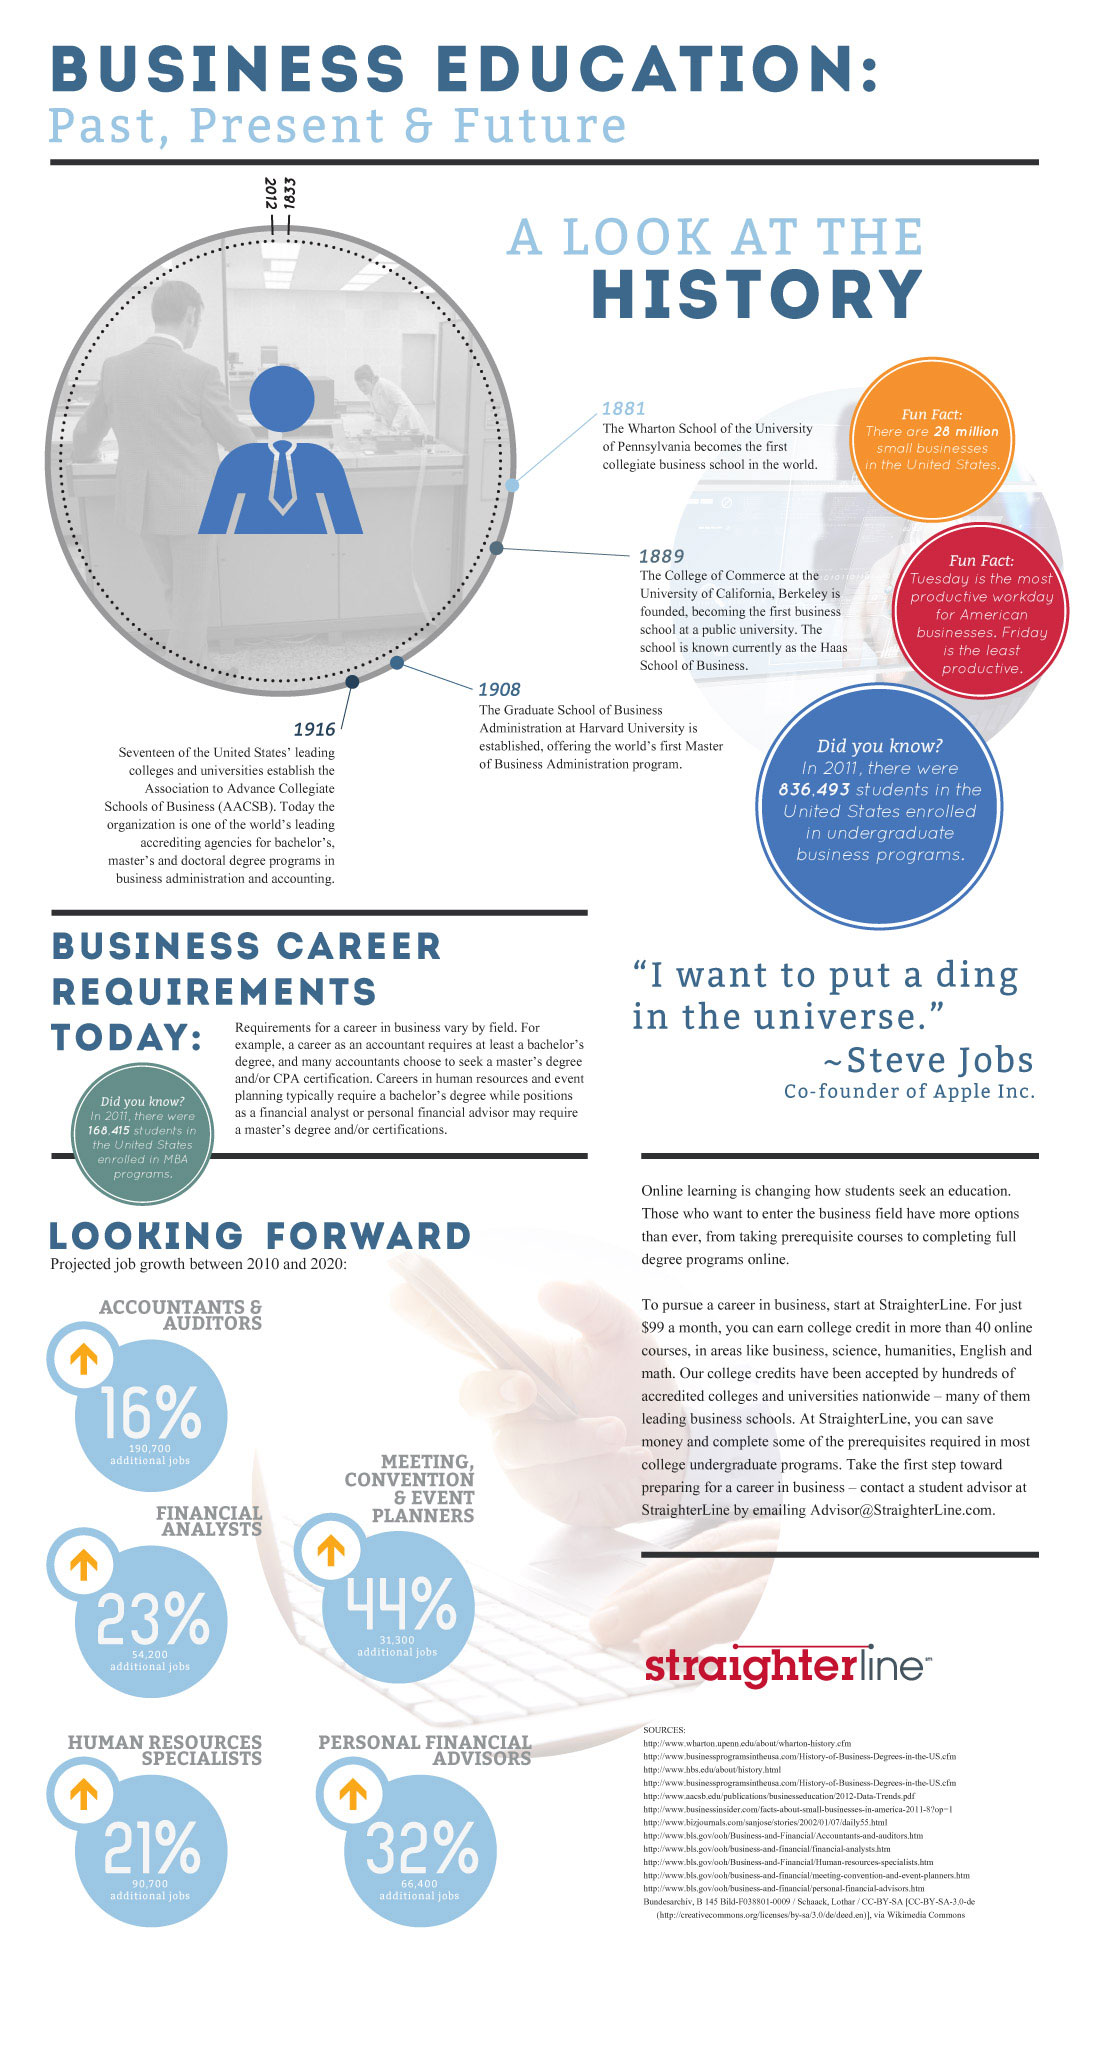 Business Education: Past, Present and Future Infographic